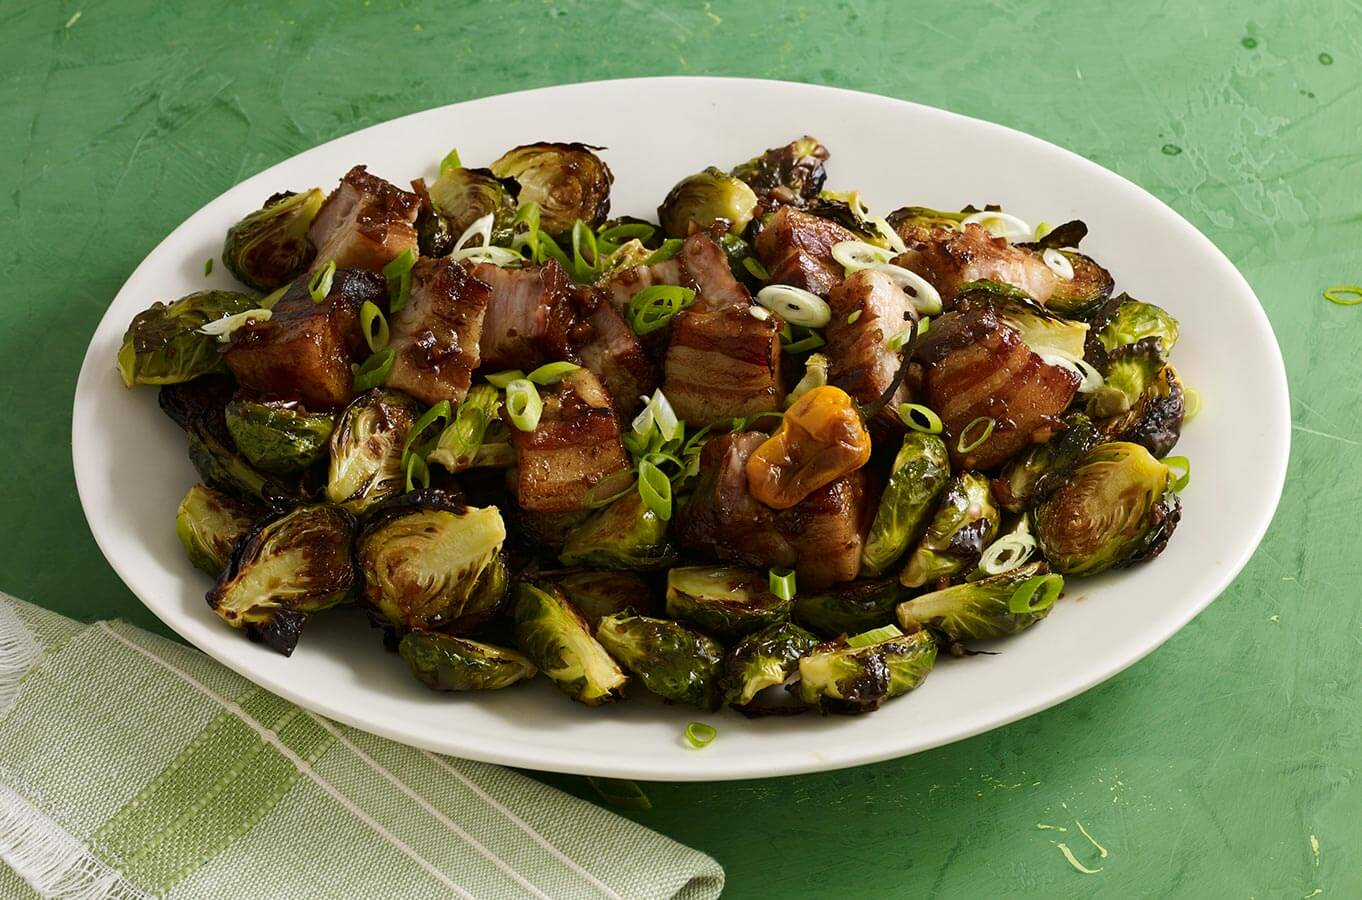 spicy brussel sprouts with pork belly and habanero